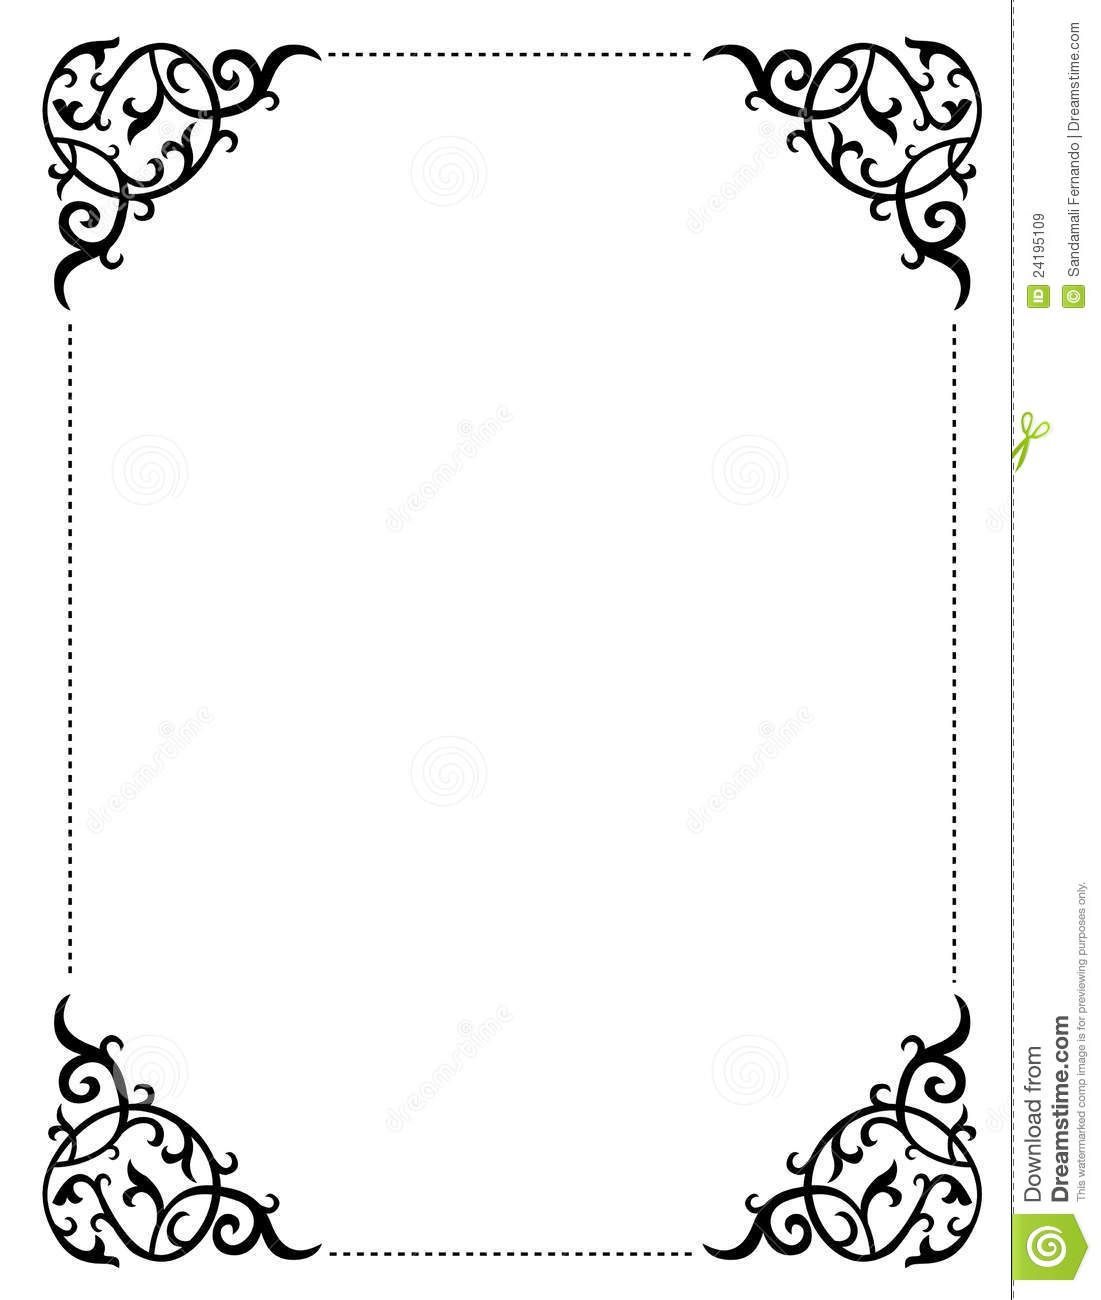 Free Printable Wedding Clip Art Borders And Backgrounds Invitation Wedding Invitations Borders Free Printable Wedding Invitations Wedding Borders